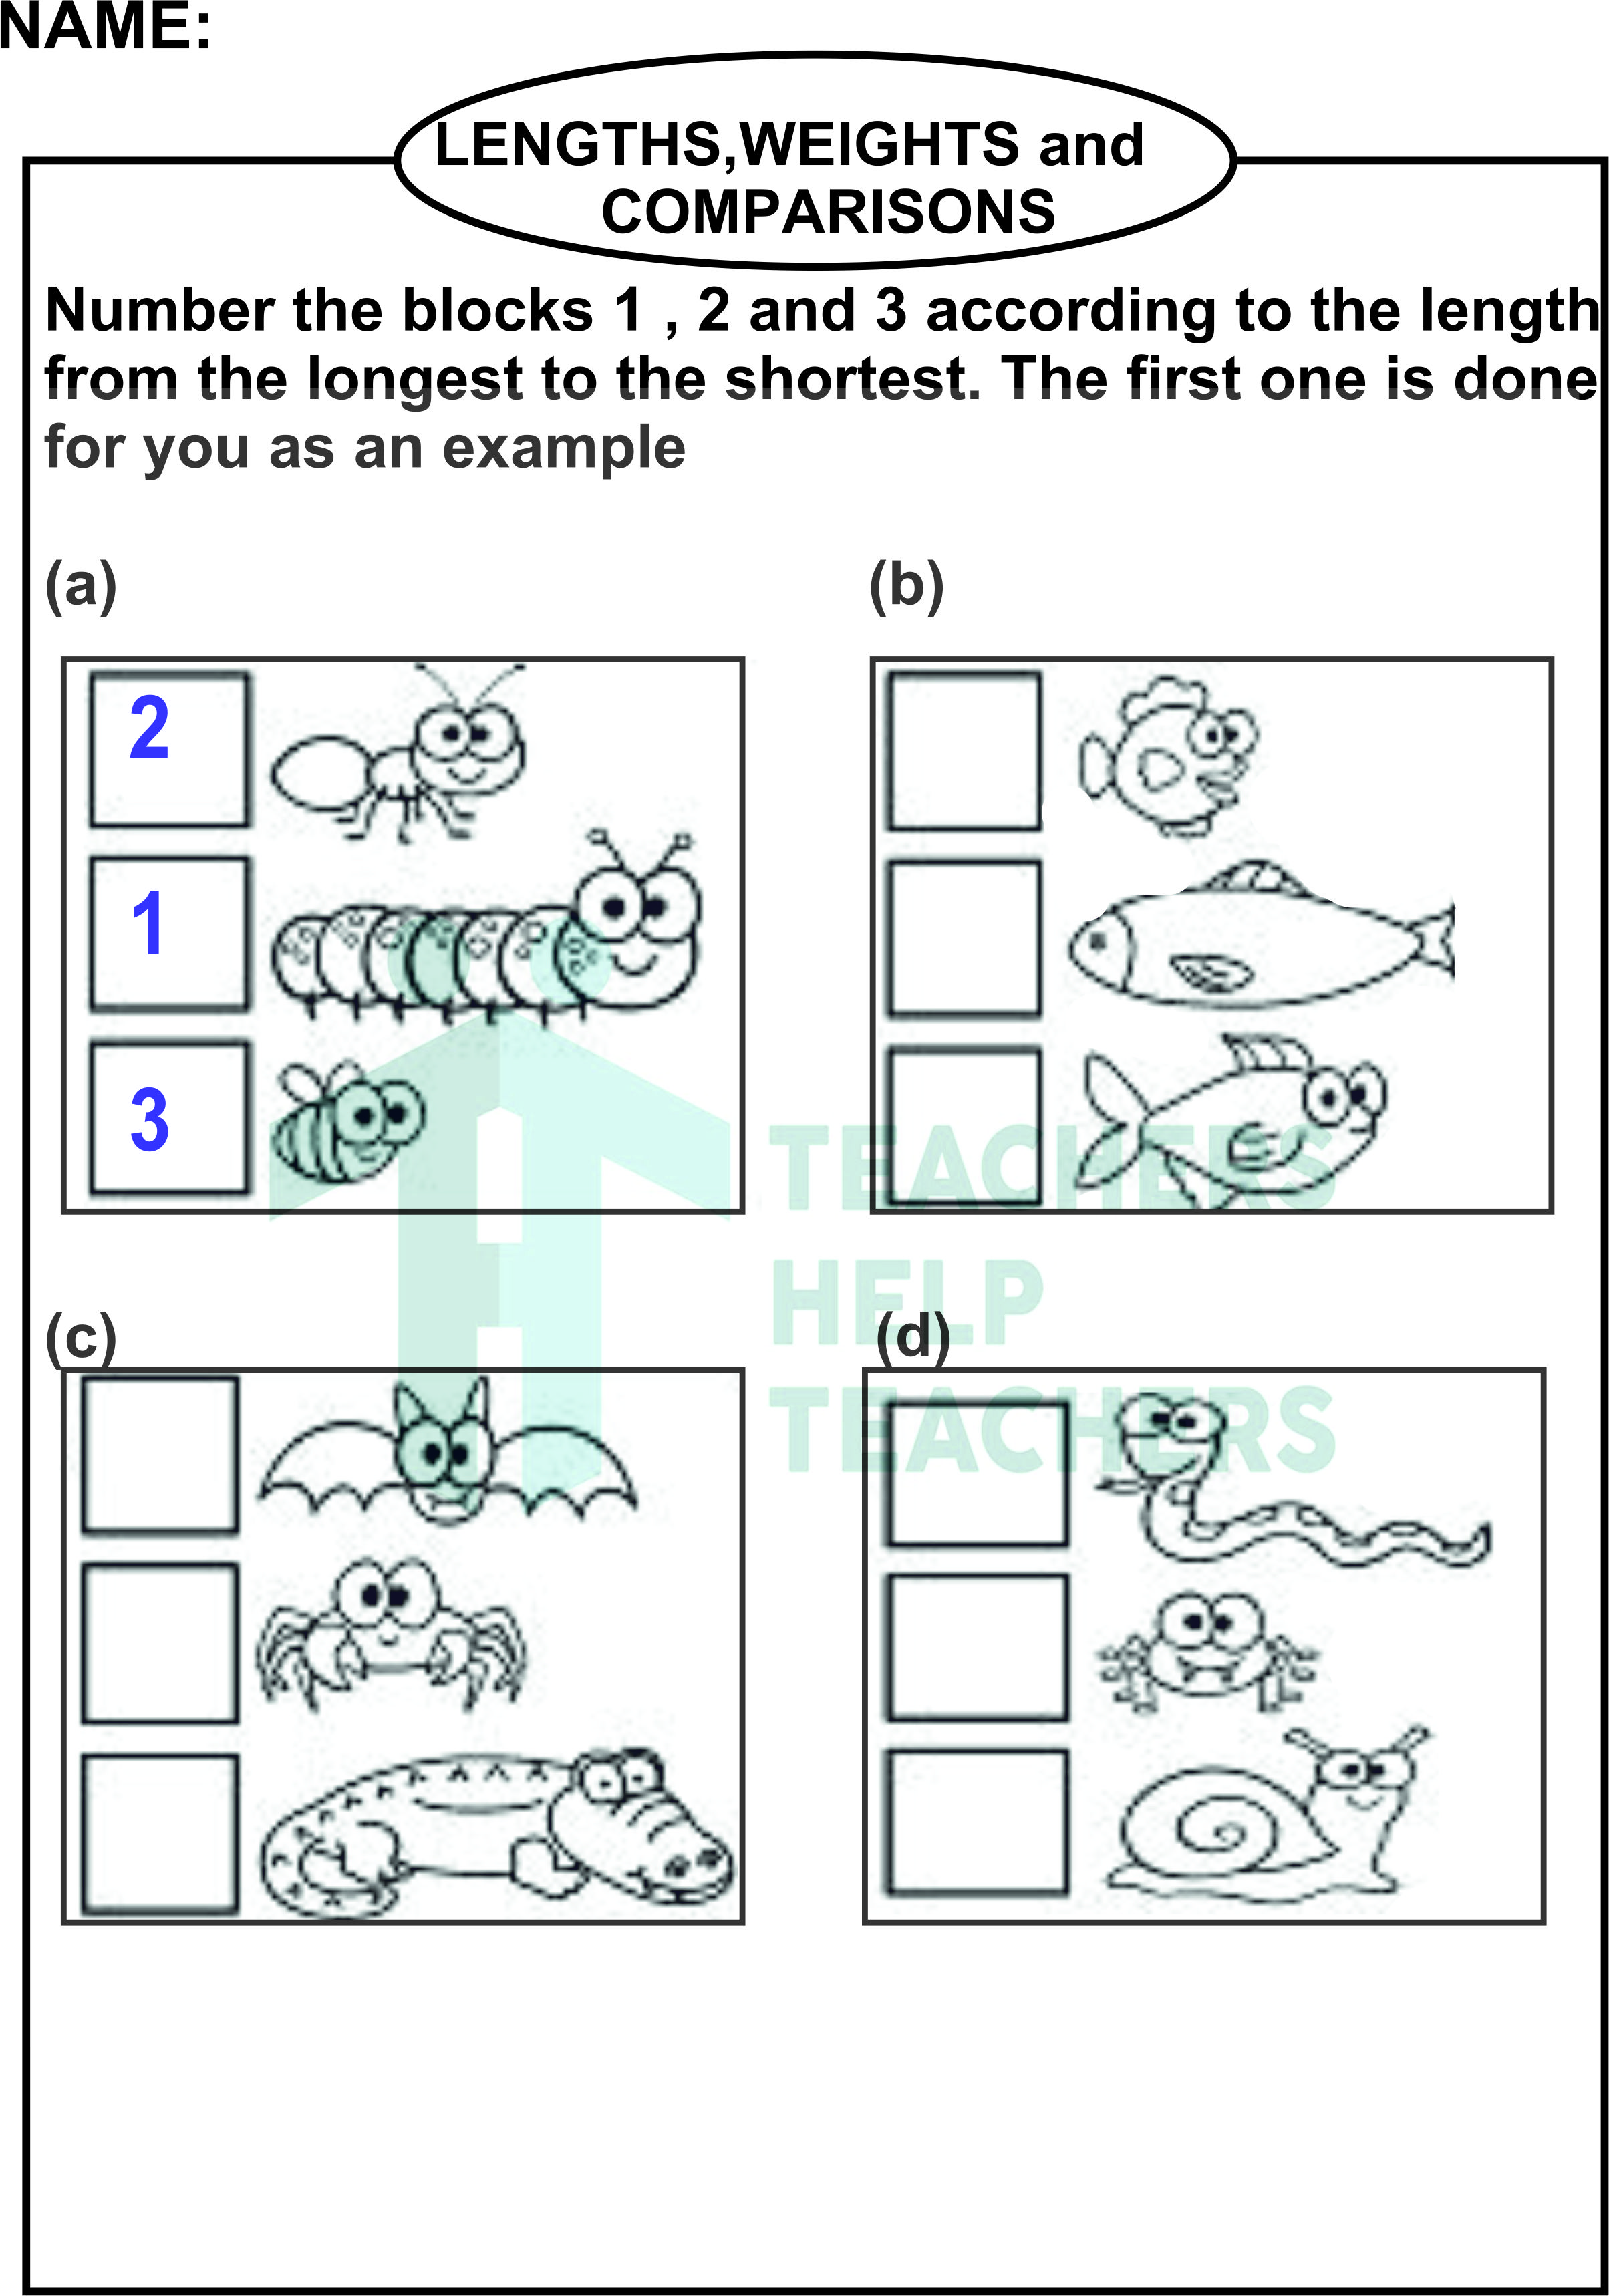 olympiad practice worksheets - Lengths weights and comparisons set 1 grade  1 - Teachers Help Teachers